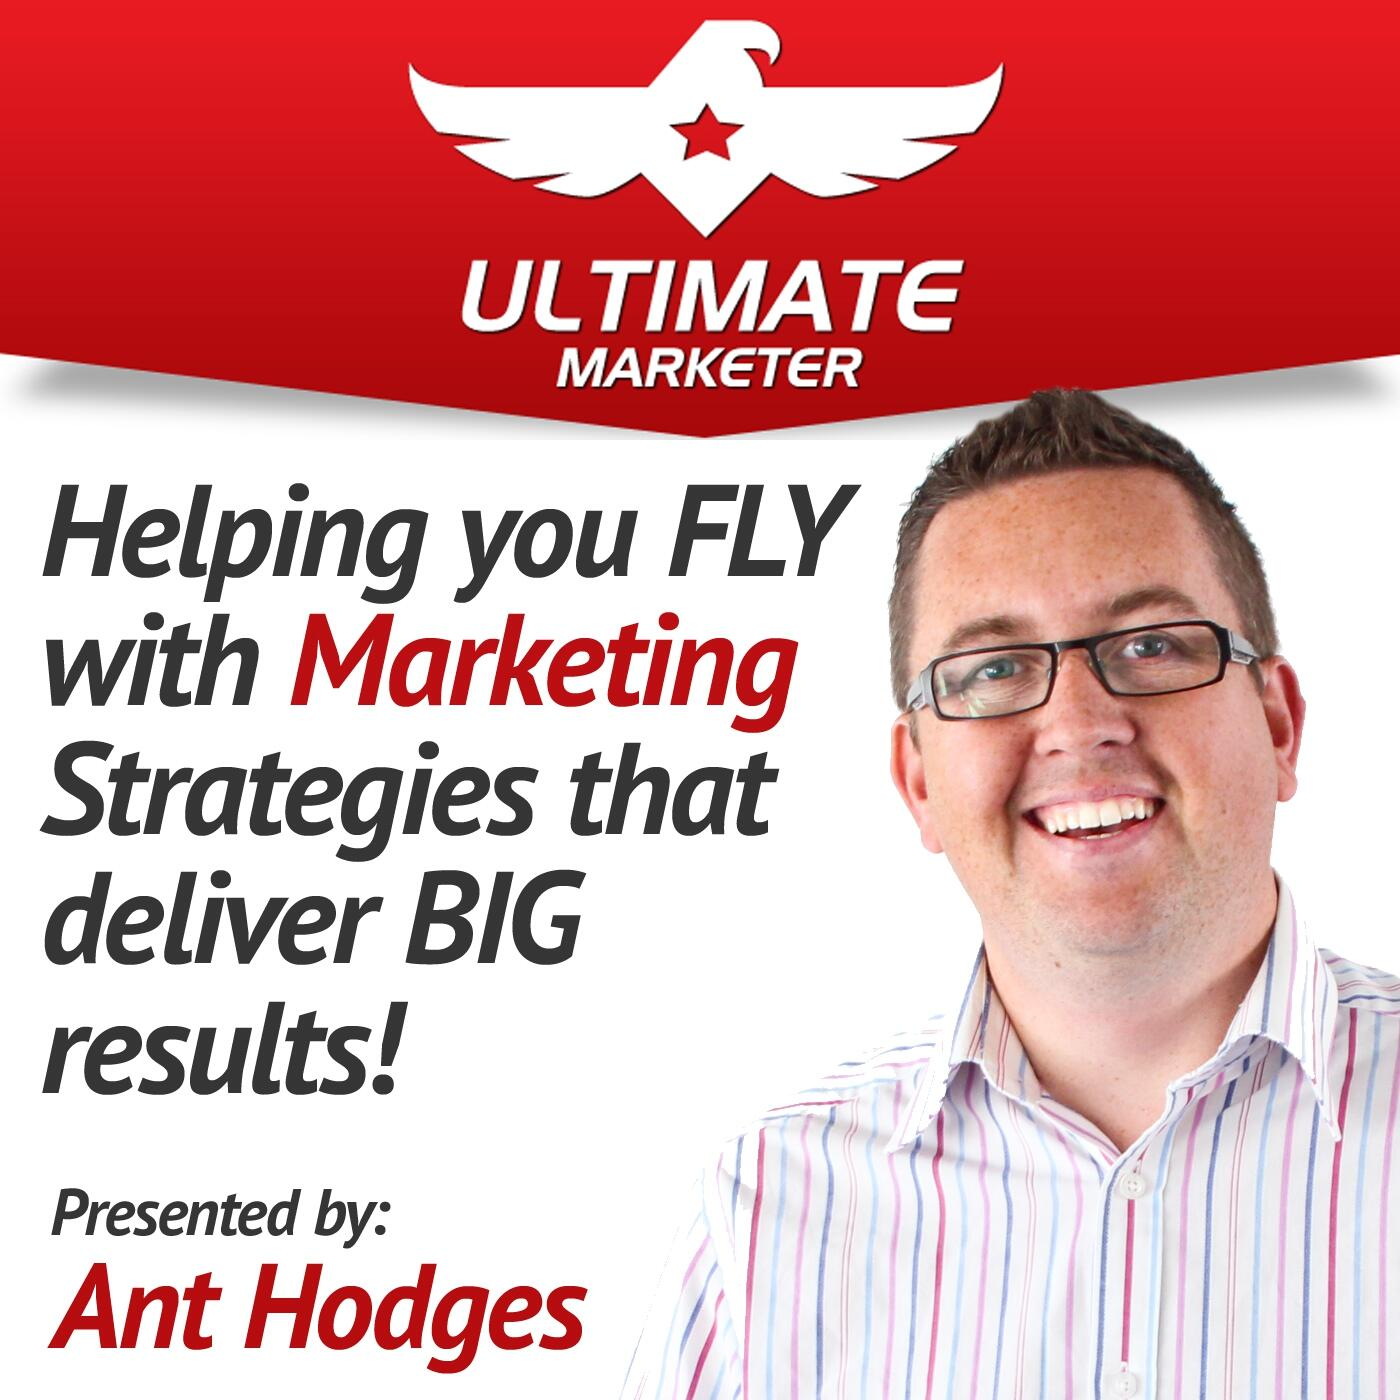 Ultimate Marketer